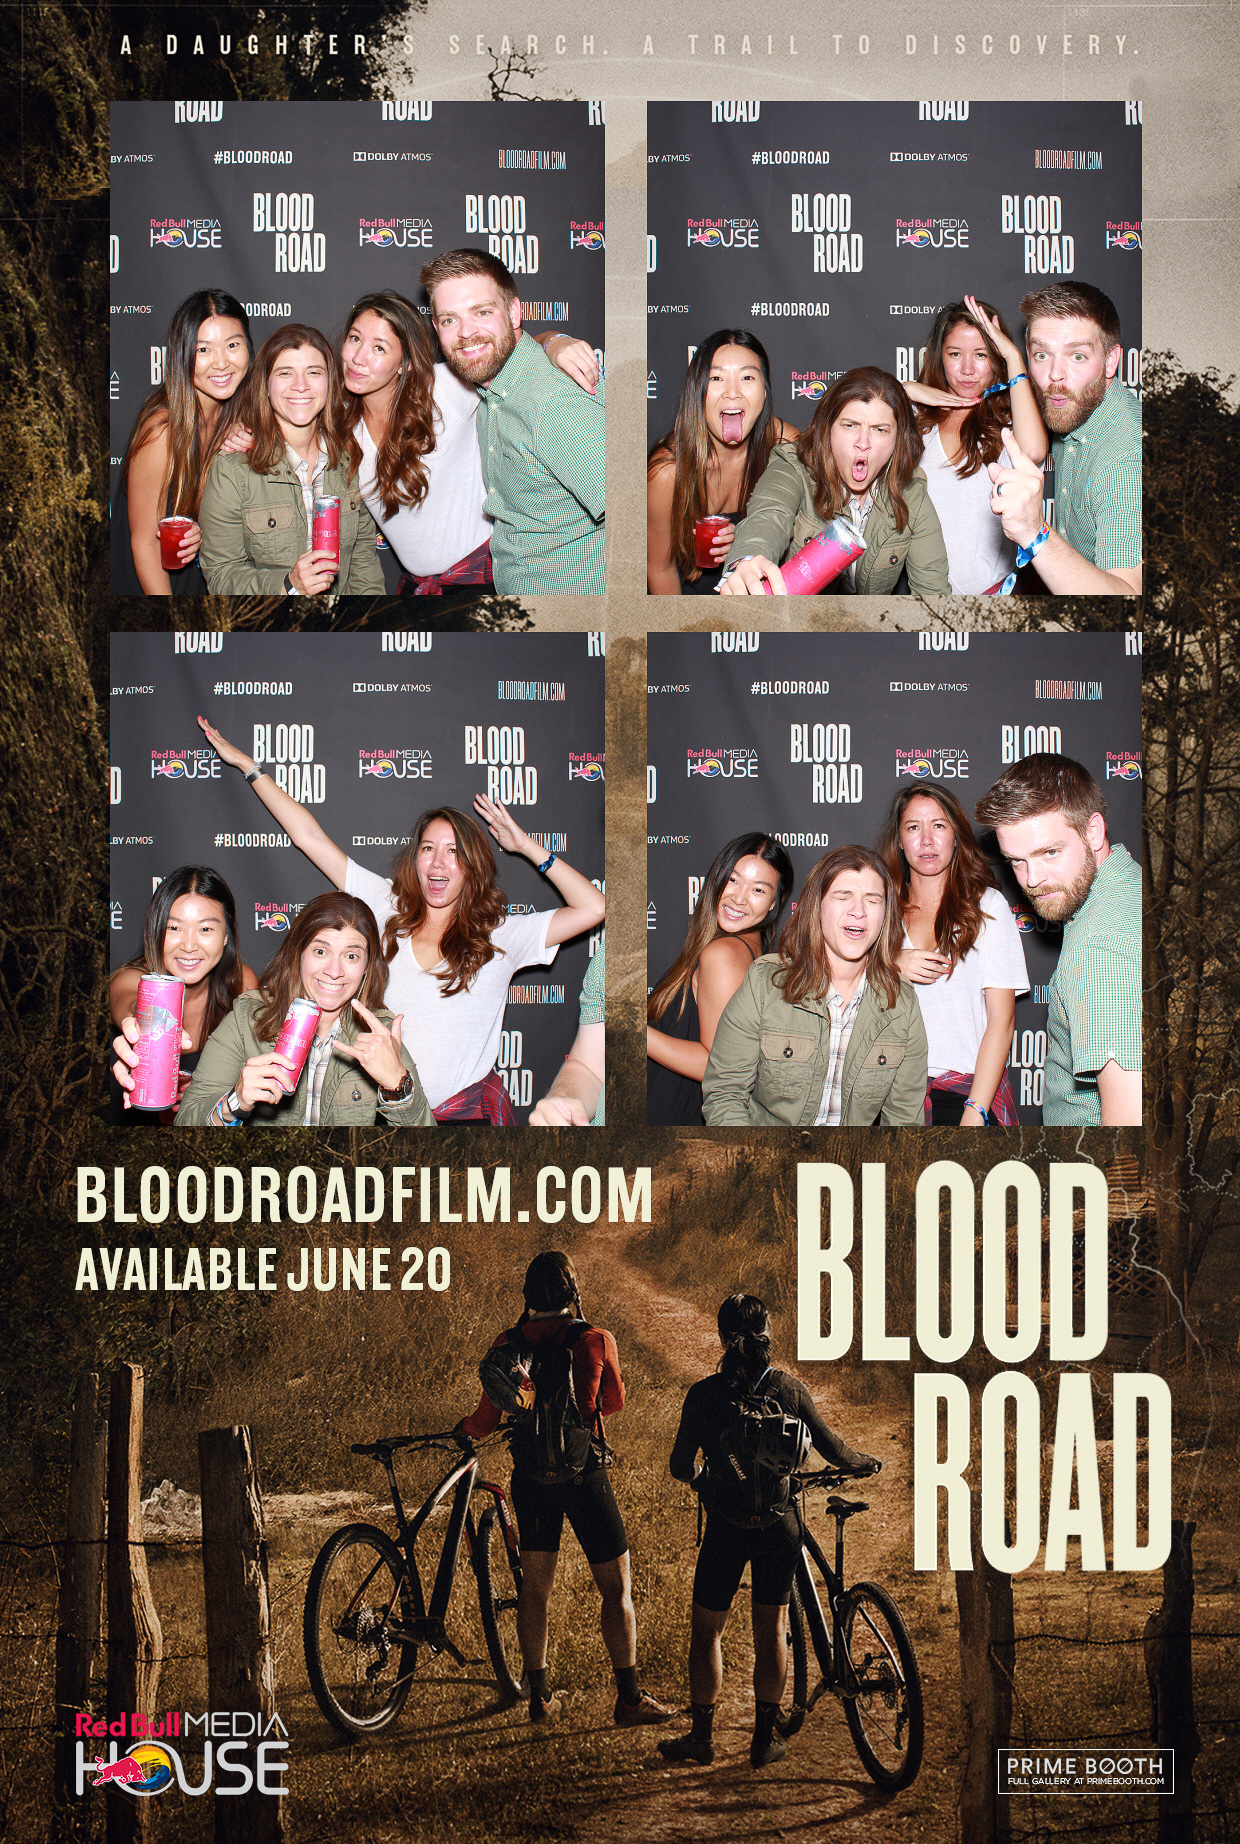 santa-monica-photo-booths-red-bull-media-house-0142